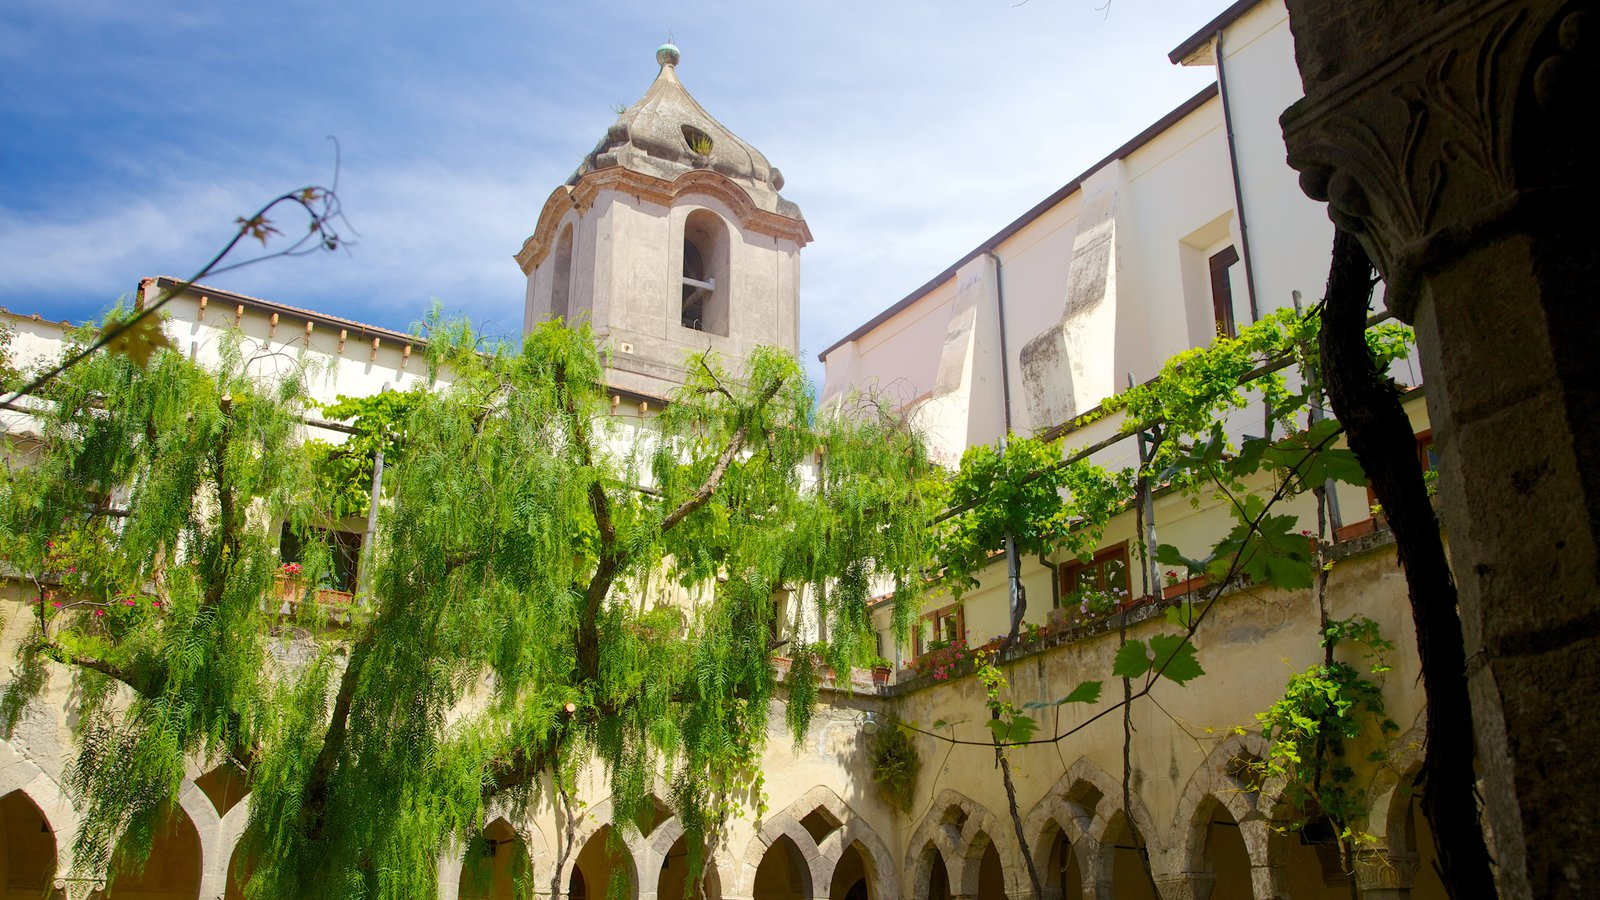 Chiesa di San Francesco which includes heritage architecture and a church or cathedral